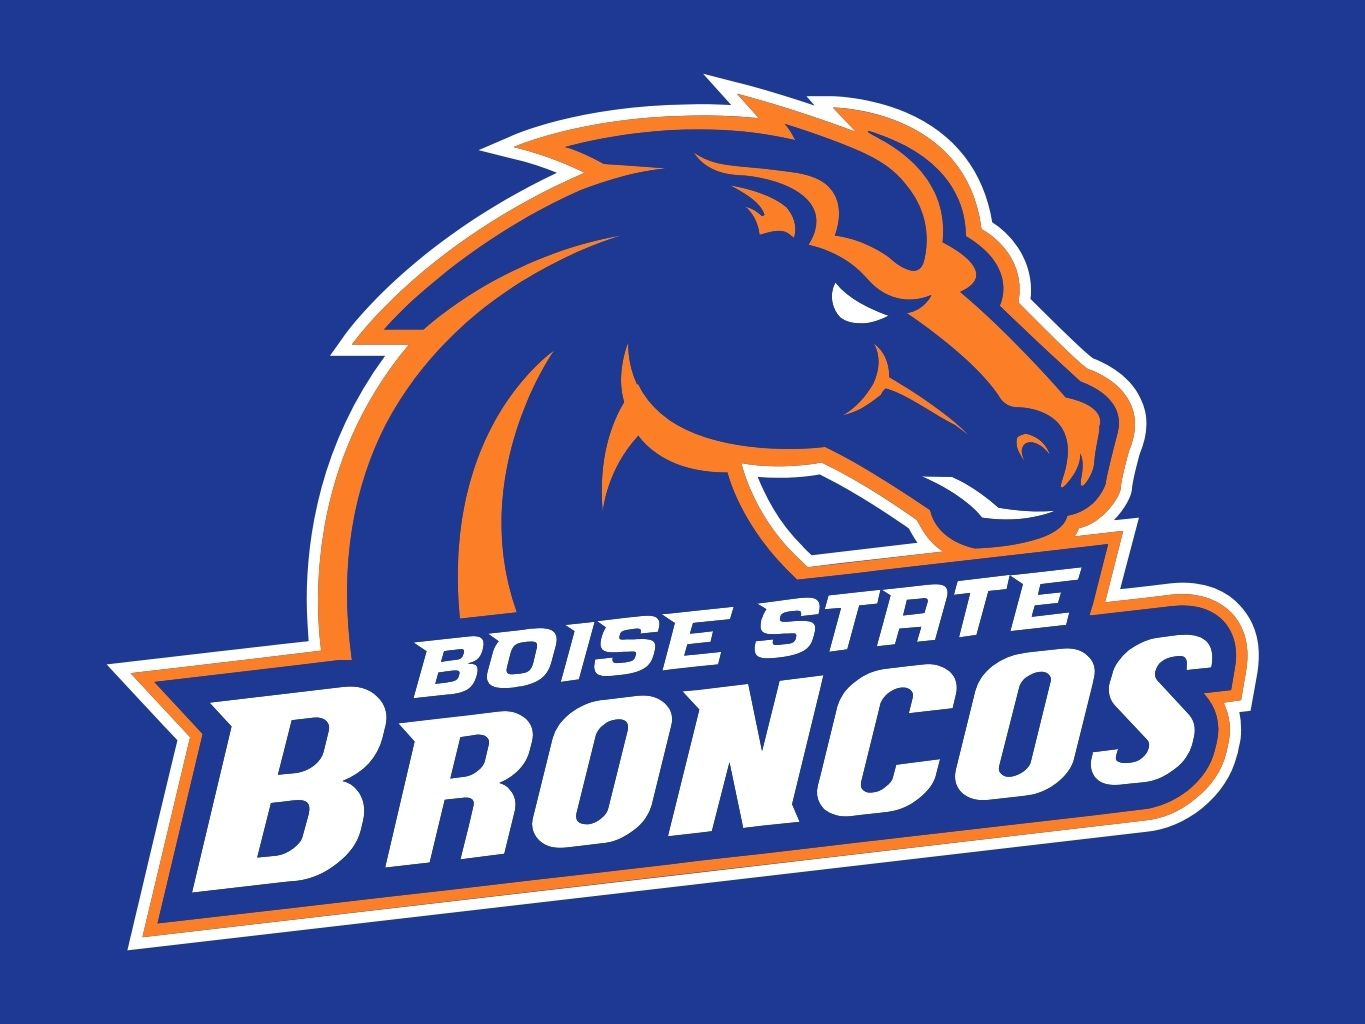 By Erick Smith, USA TODAY Boise State's football program